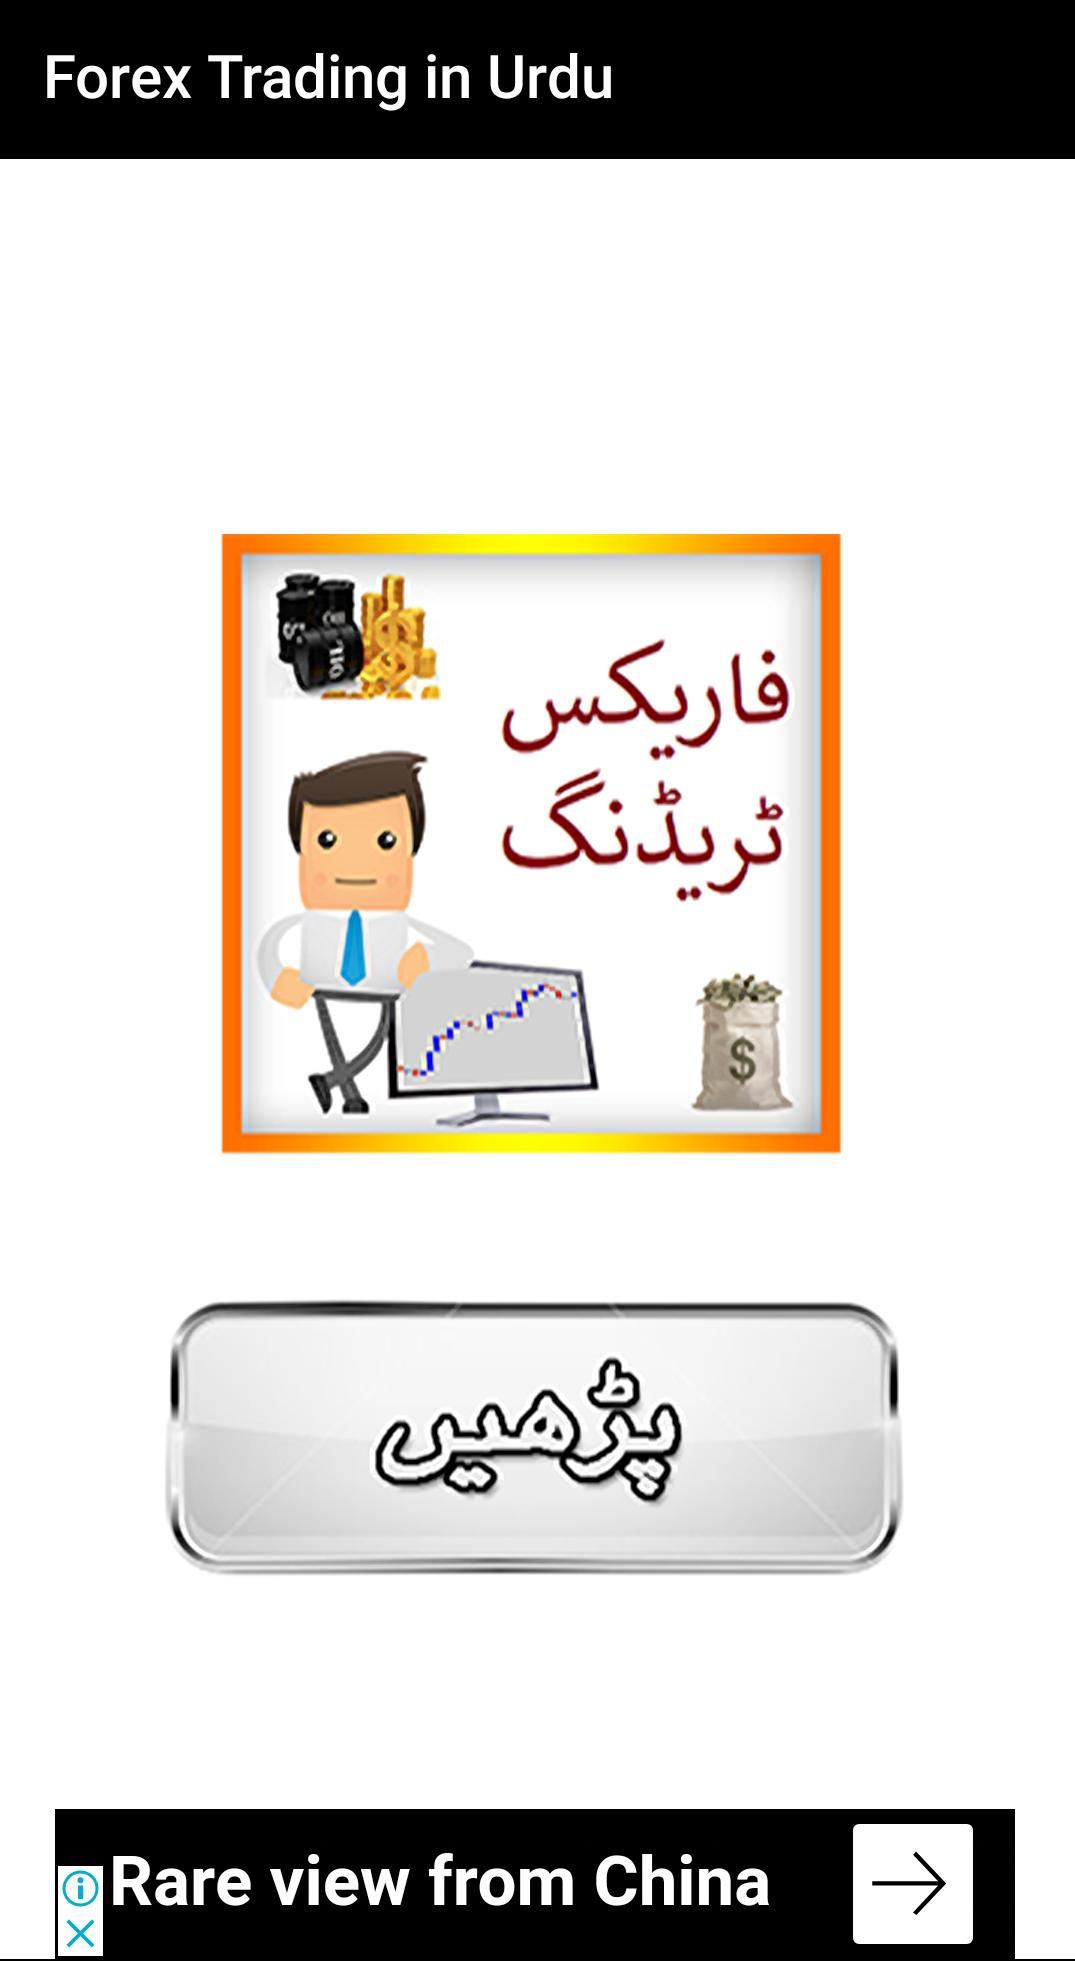 Forex Trading in Urdu for Android - APK Download